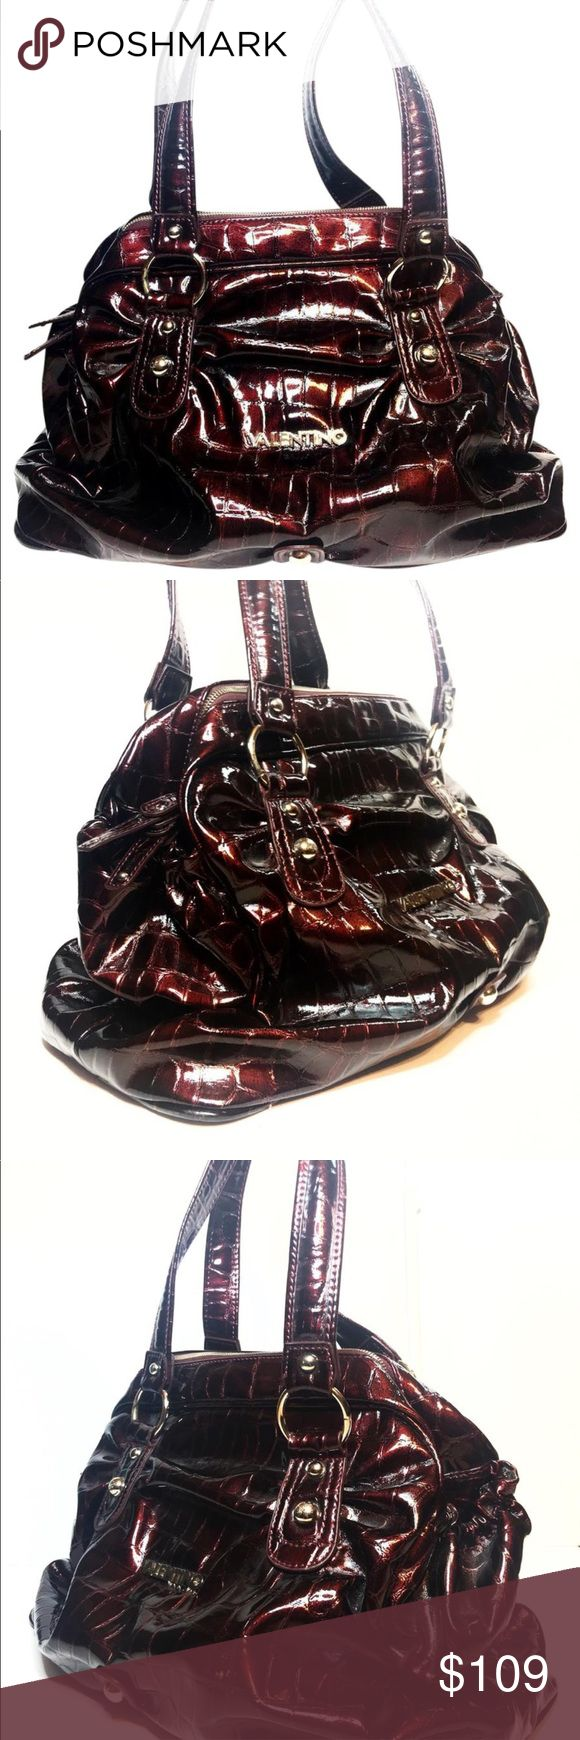 Patent maroon croc embossed Mario Valentino bag This lovely Mario Valentino shoulder bag is in excellent condition and has been professionally cleaned and detailed in preparation of this listing Mario Valentino Bags